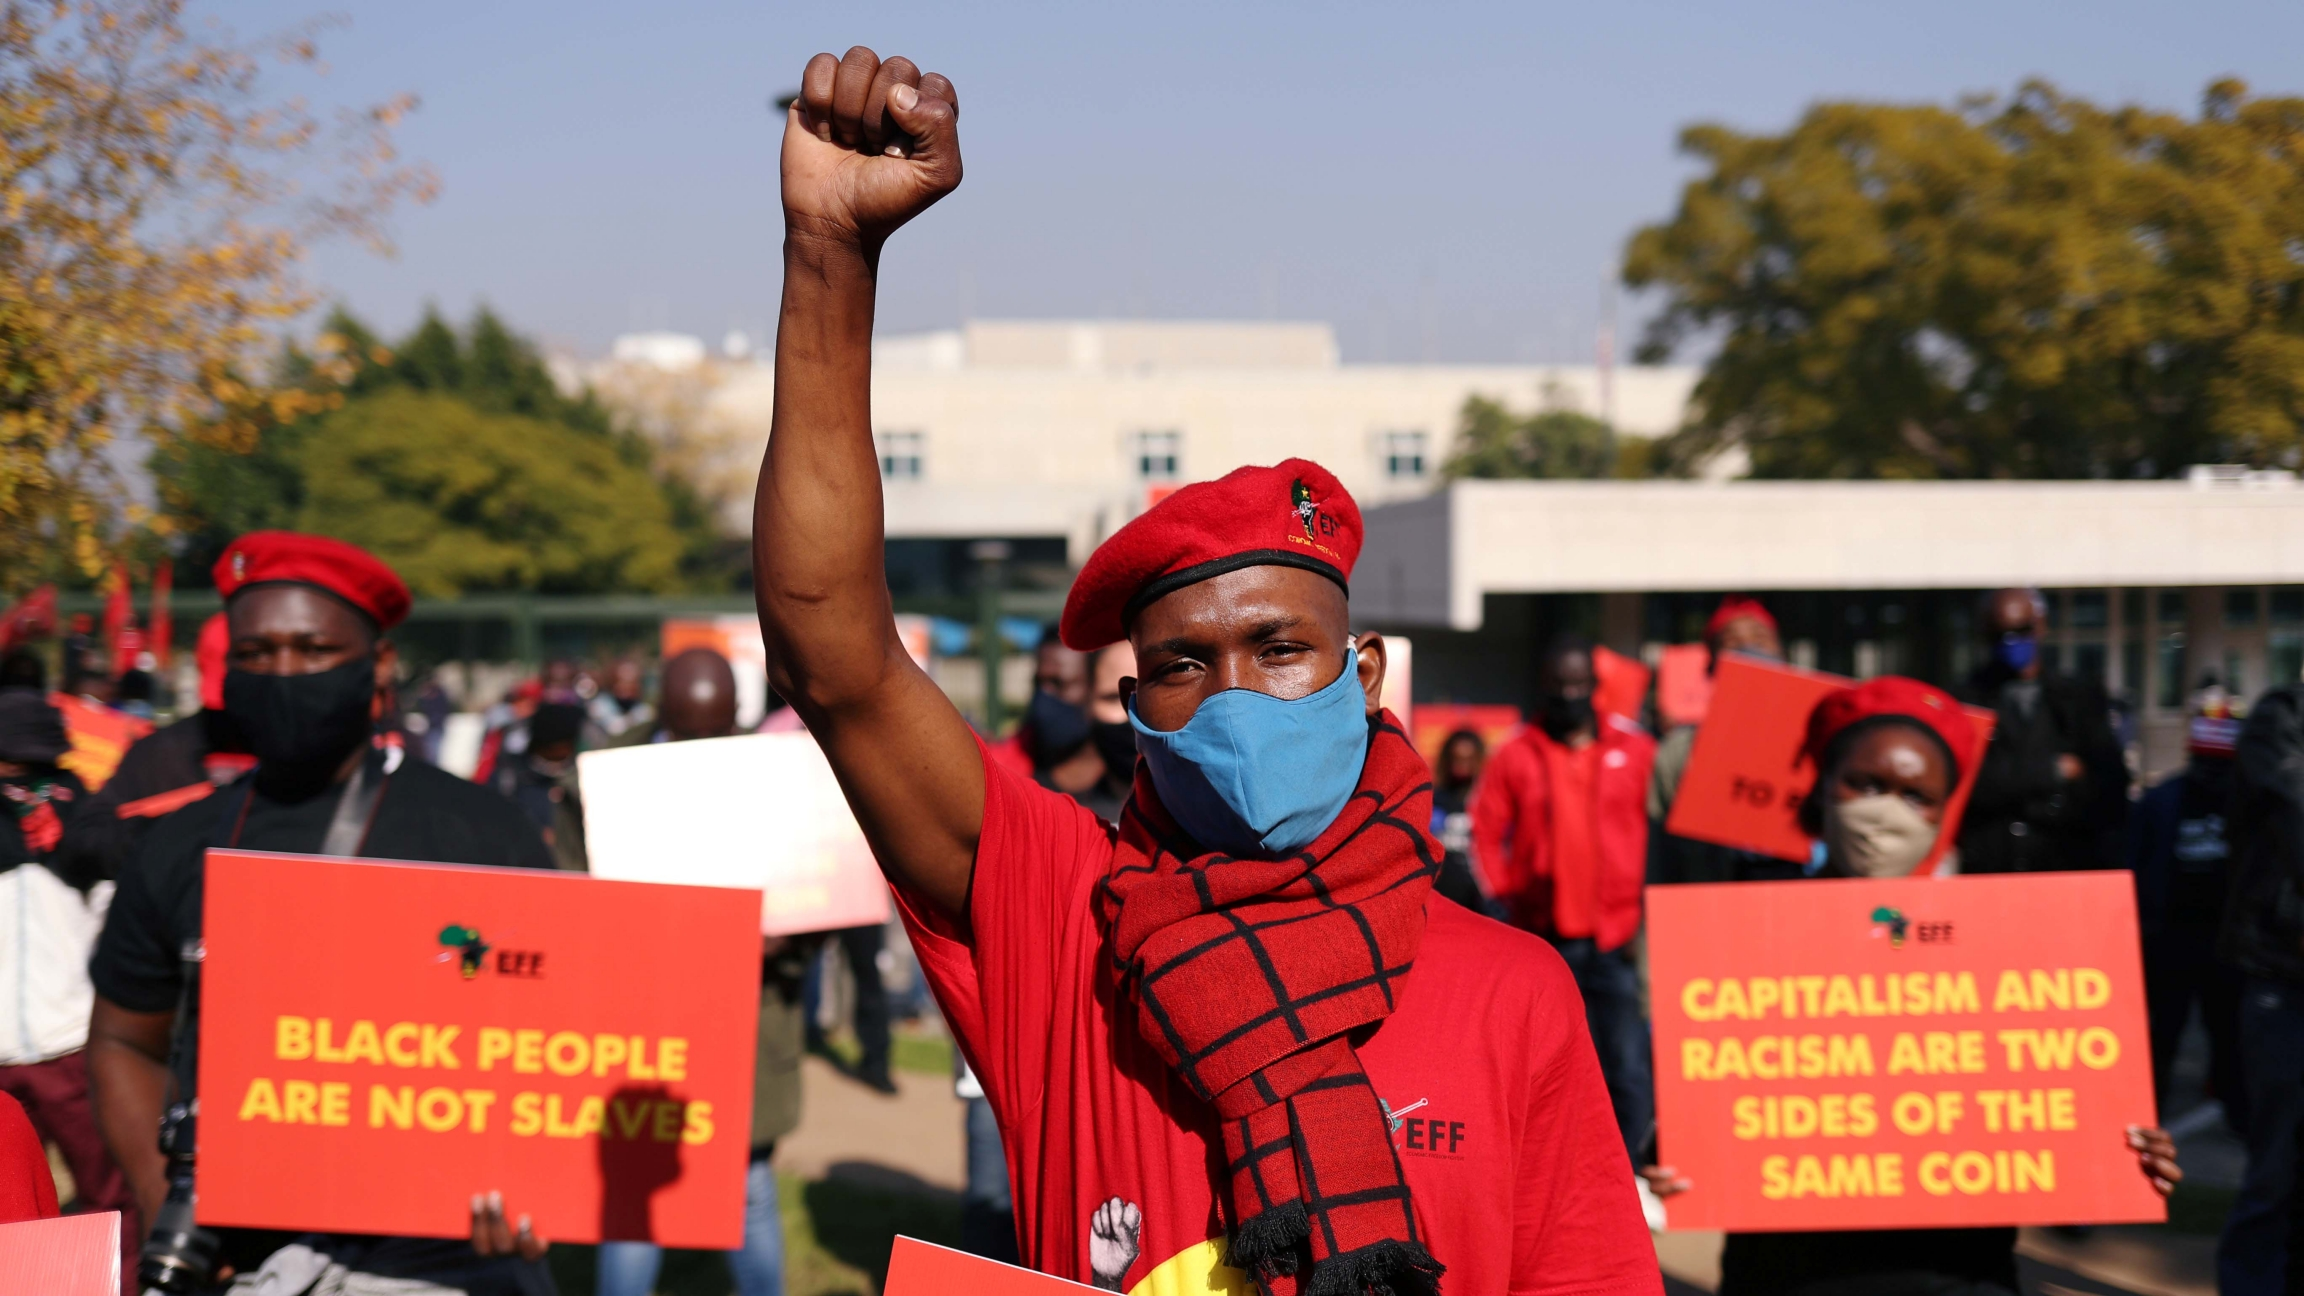 A member of South Africa's opposition party, the Economic Freedom Fighters (EFF), wears a red shirt and chants outside the US embassy in Pretoria, South Africa, on June 8, 2020.